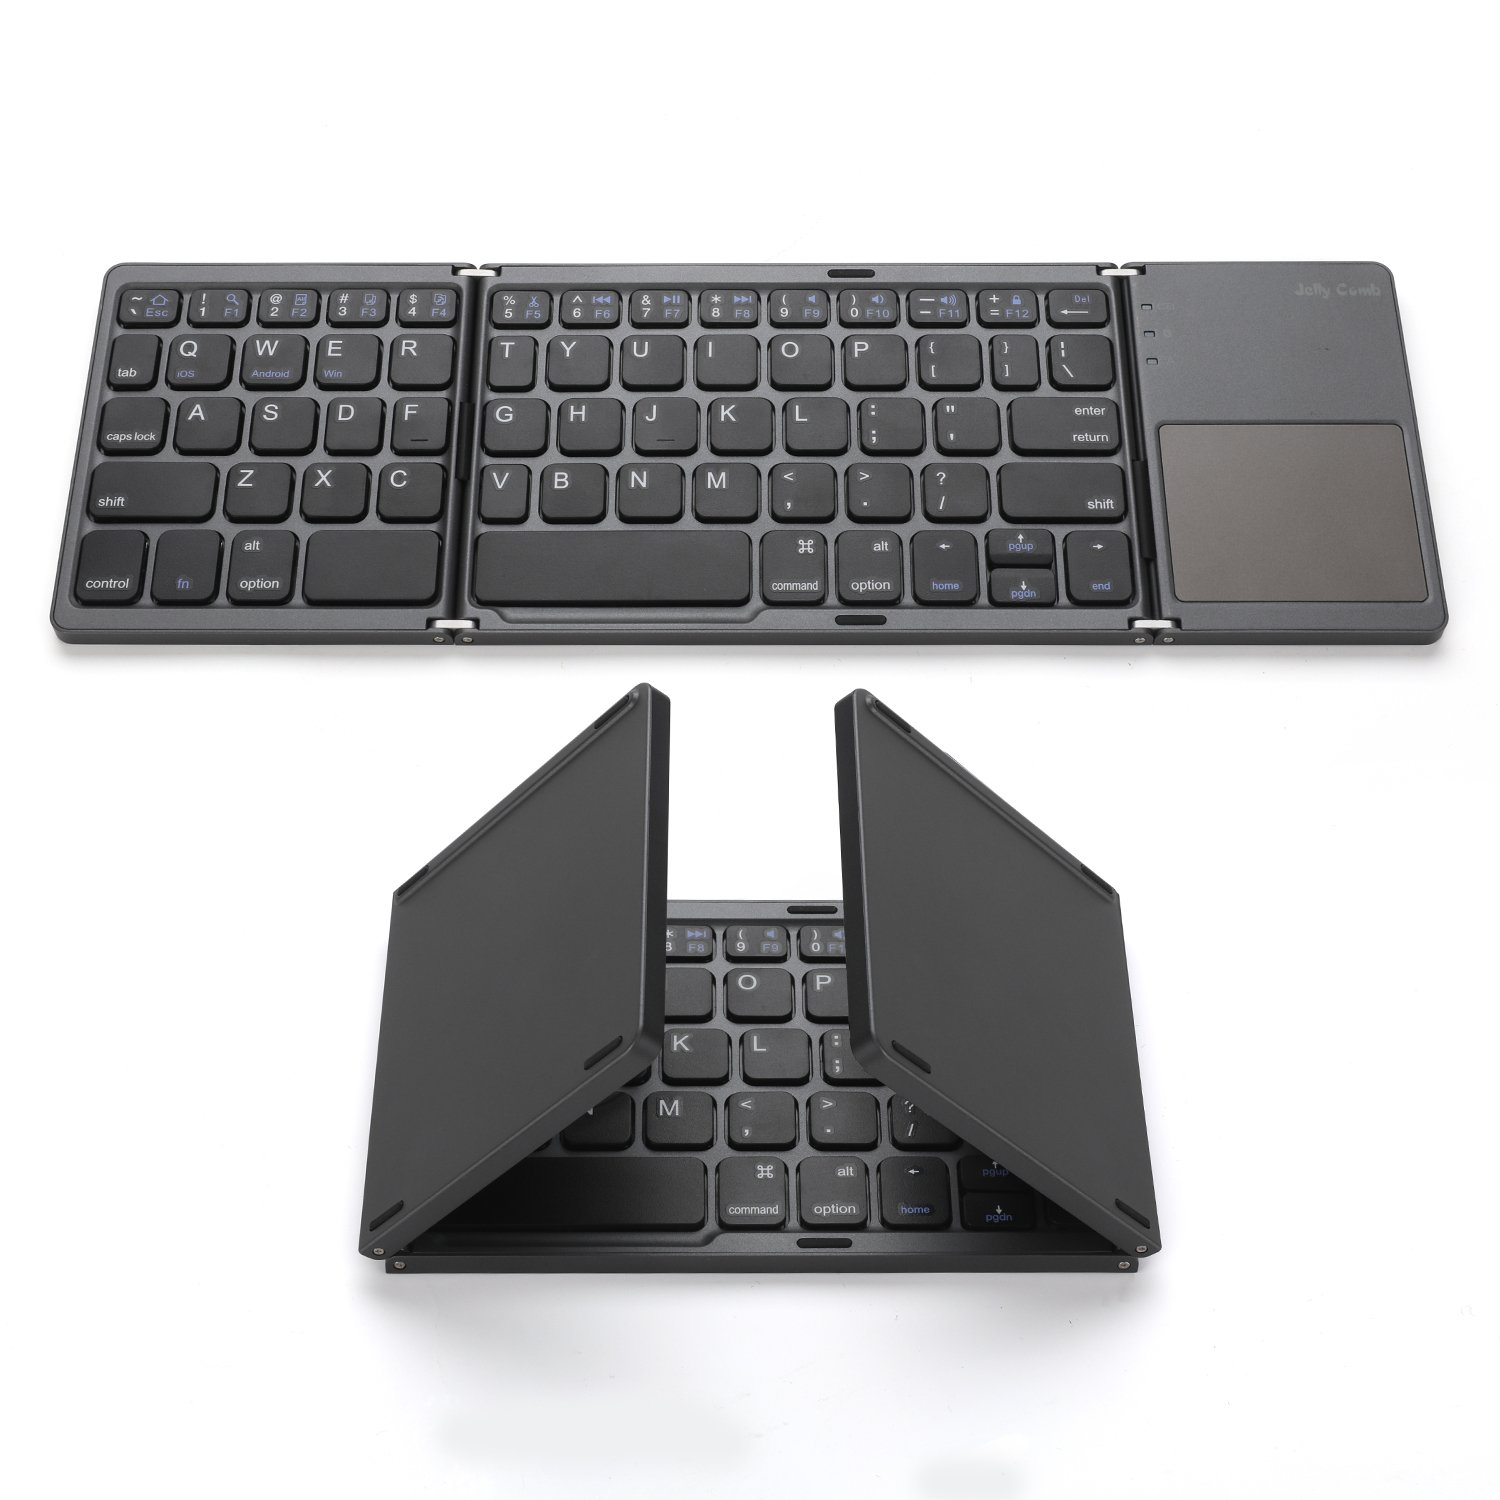 b390dd48c51 Foldable Bluetooth Keyboard, Jelly Comb Pocket Size Portable Mini BT  Wireless Keyboard with Touchpad for Android, Windows, PC, Tablet, with  Rechargable ...